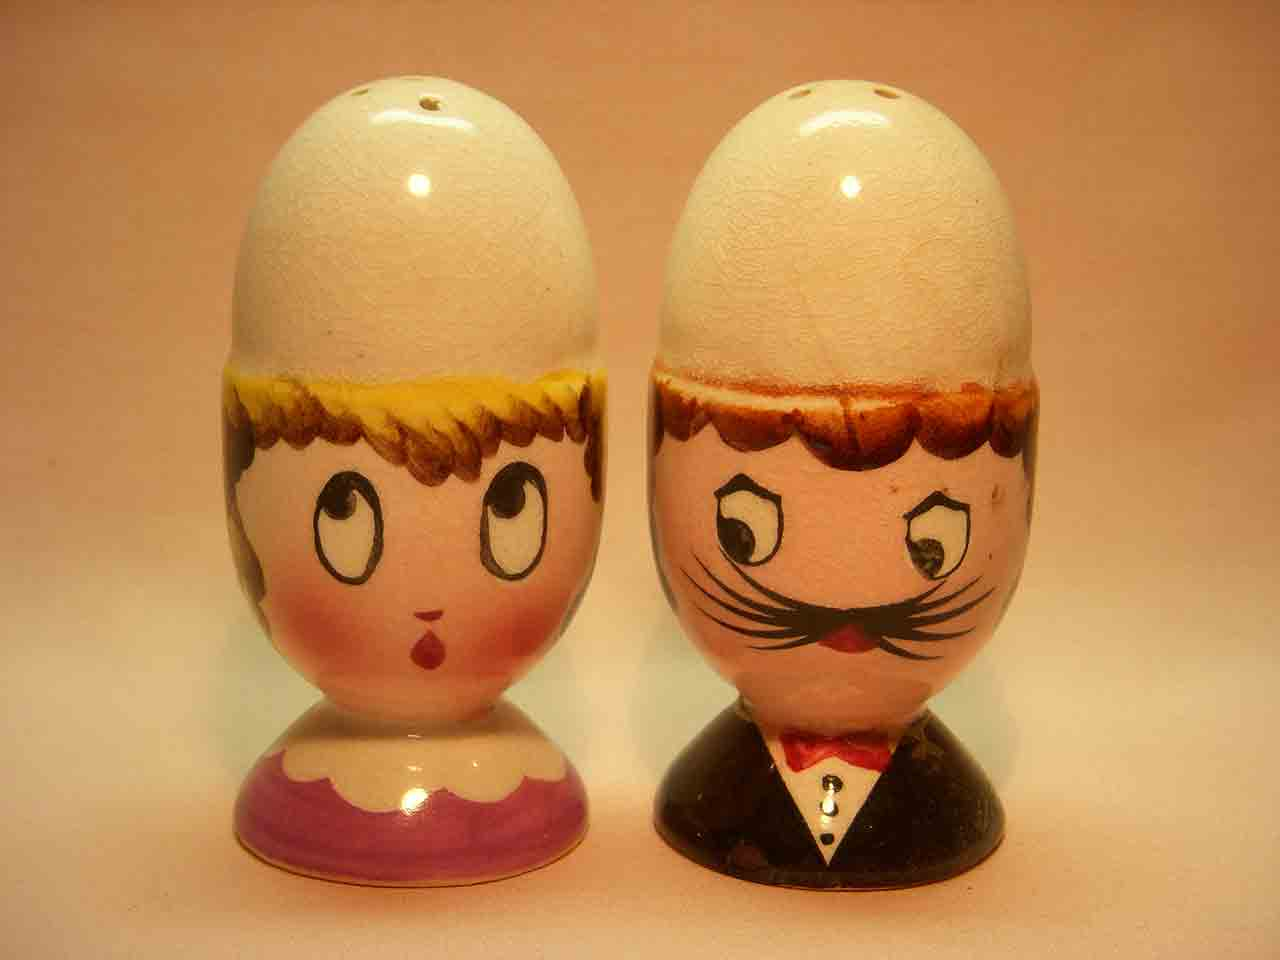 Eggs in egg cup heads salt and pepper shaker